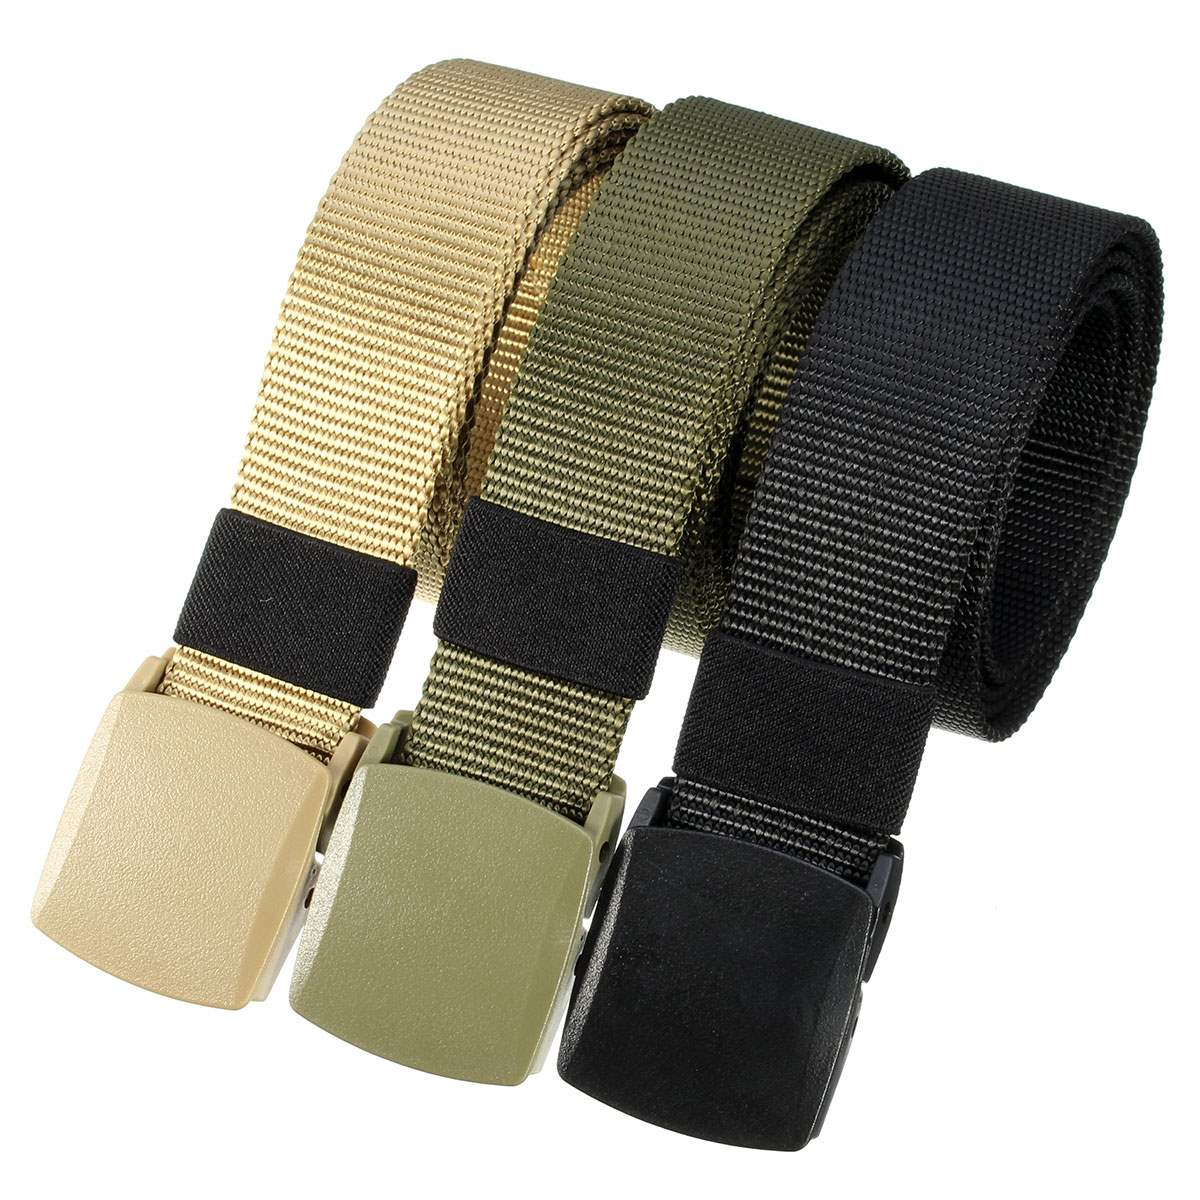 Quick-drying Automatic Buckle Polyester adjustable Belt Army Tactical Hunting Waistband Outdoor Military Rescue Survival Belt цена